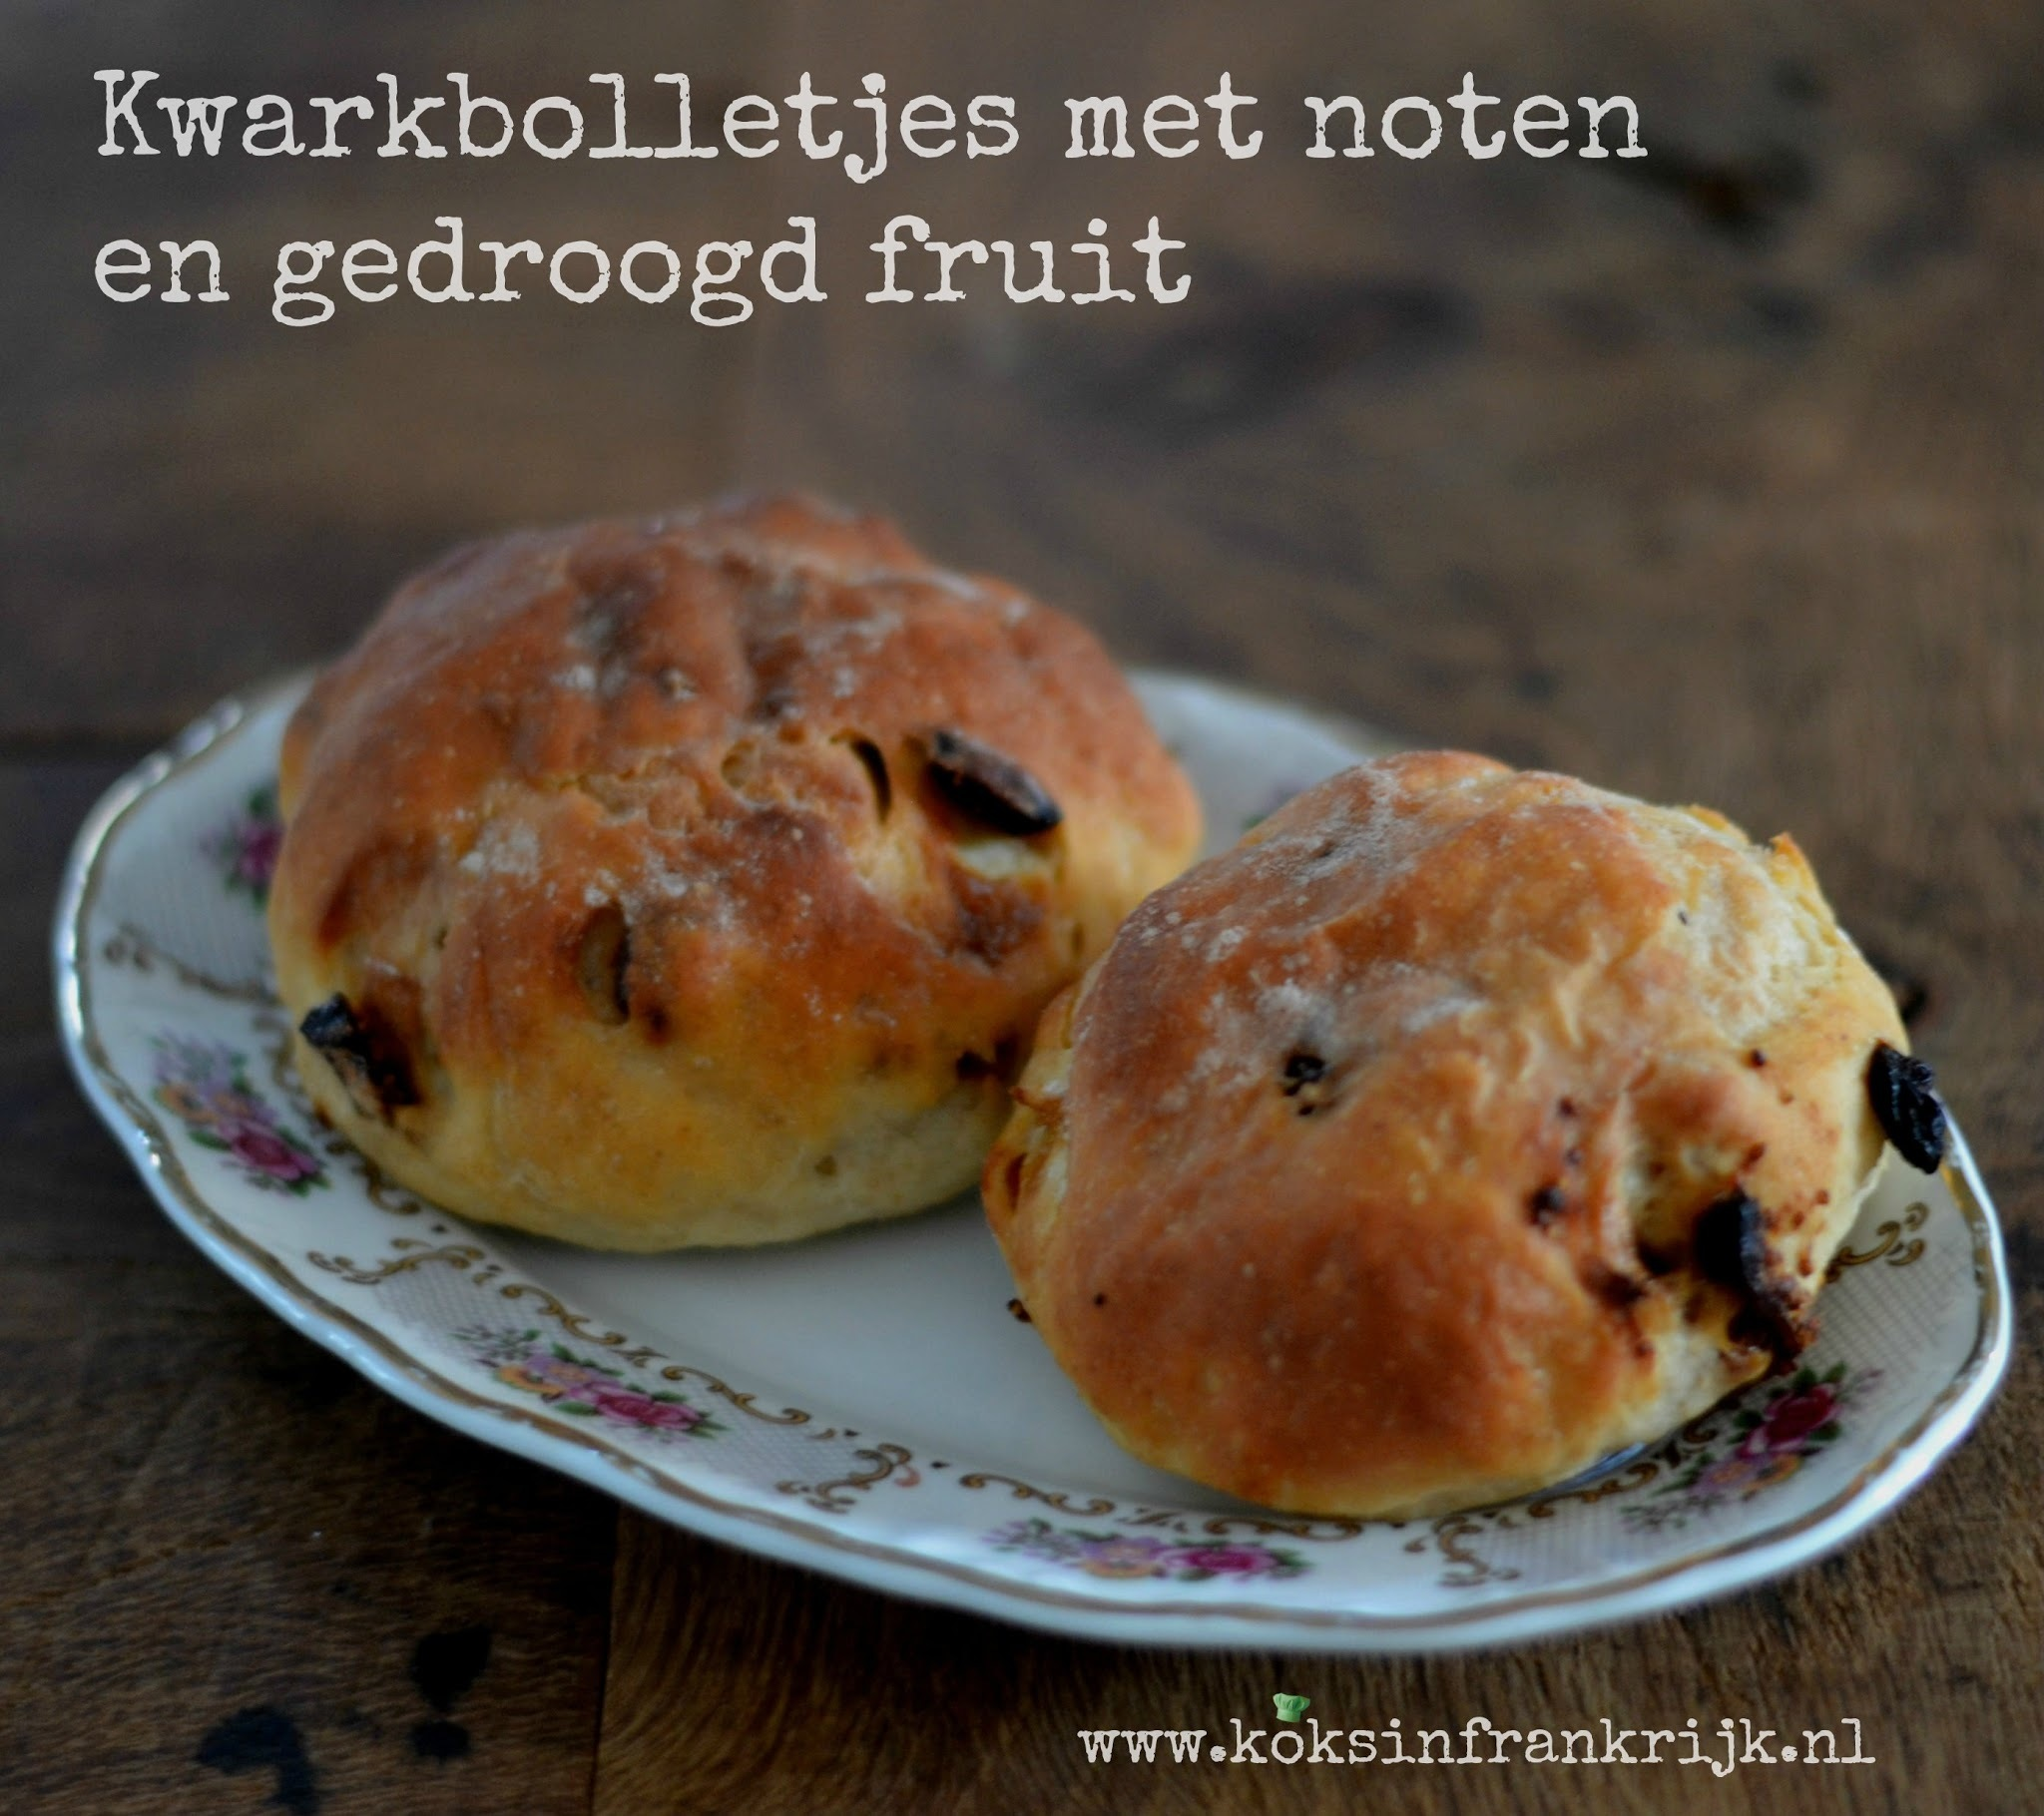 Kwarkbolletjes met noten en fruit